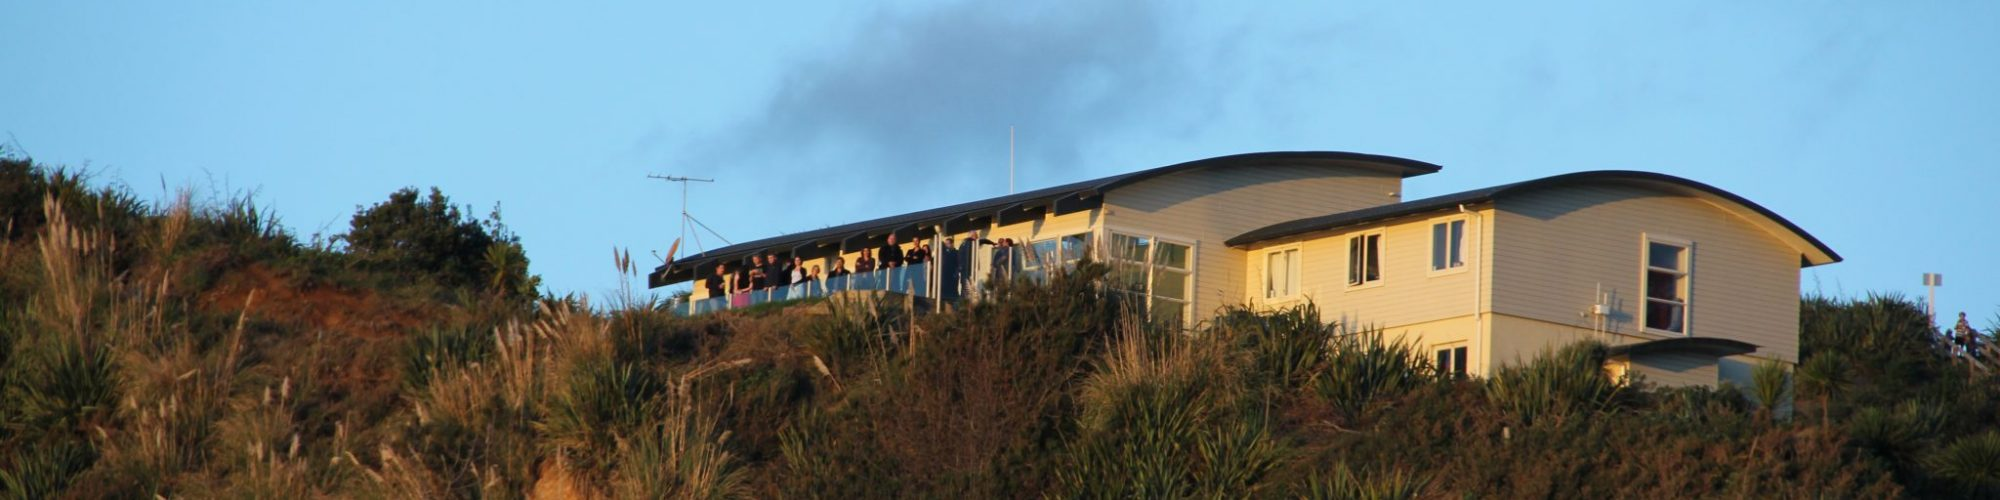 Clubhouse from beach